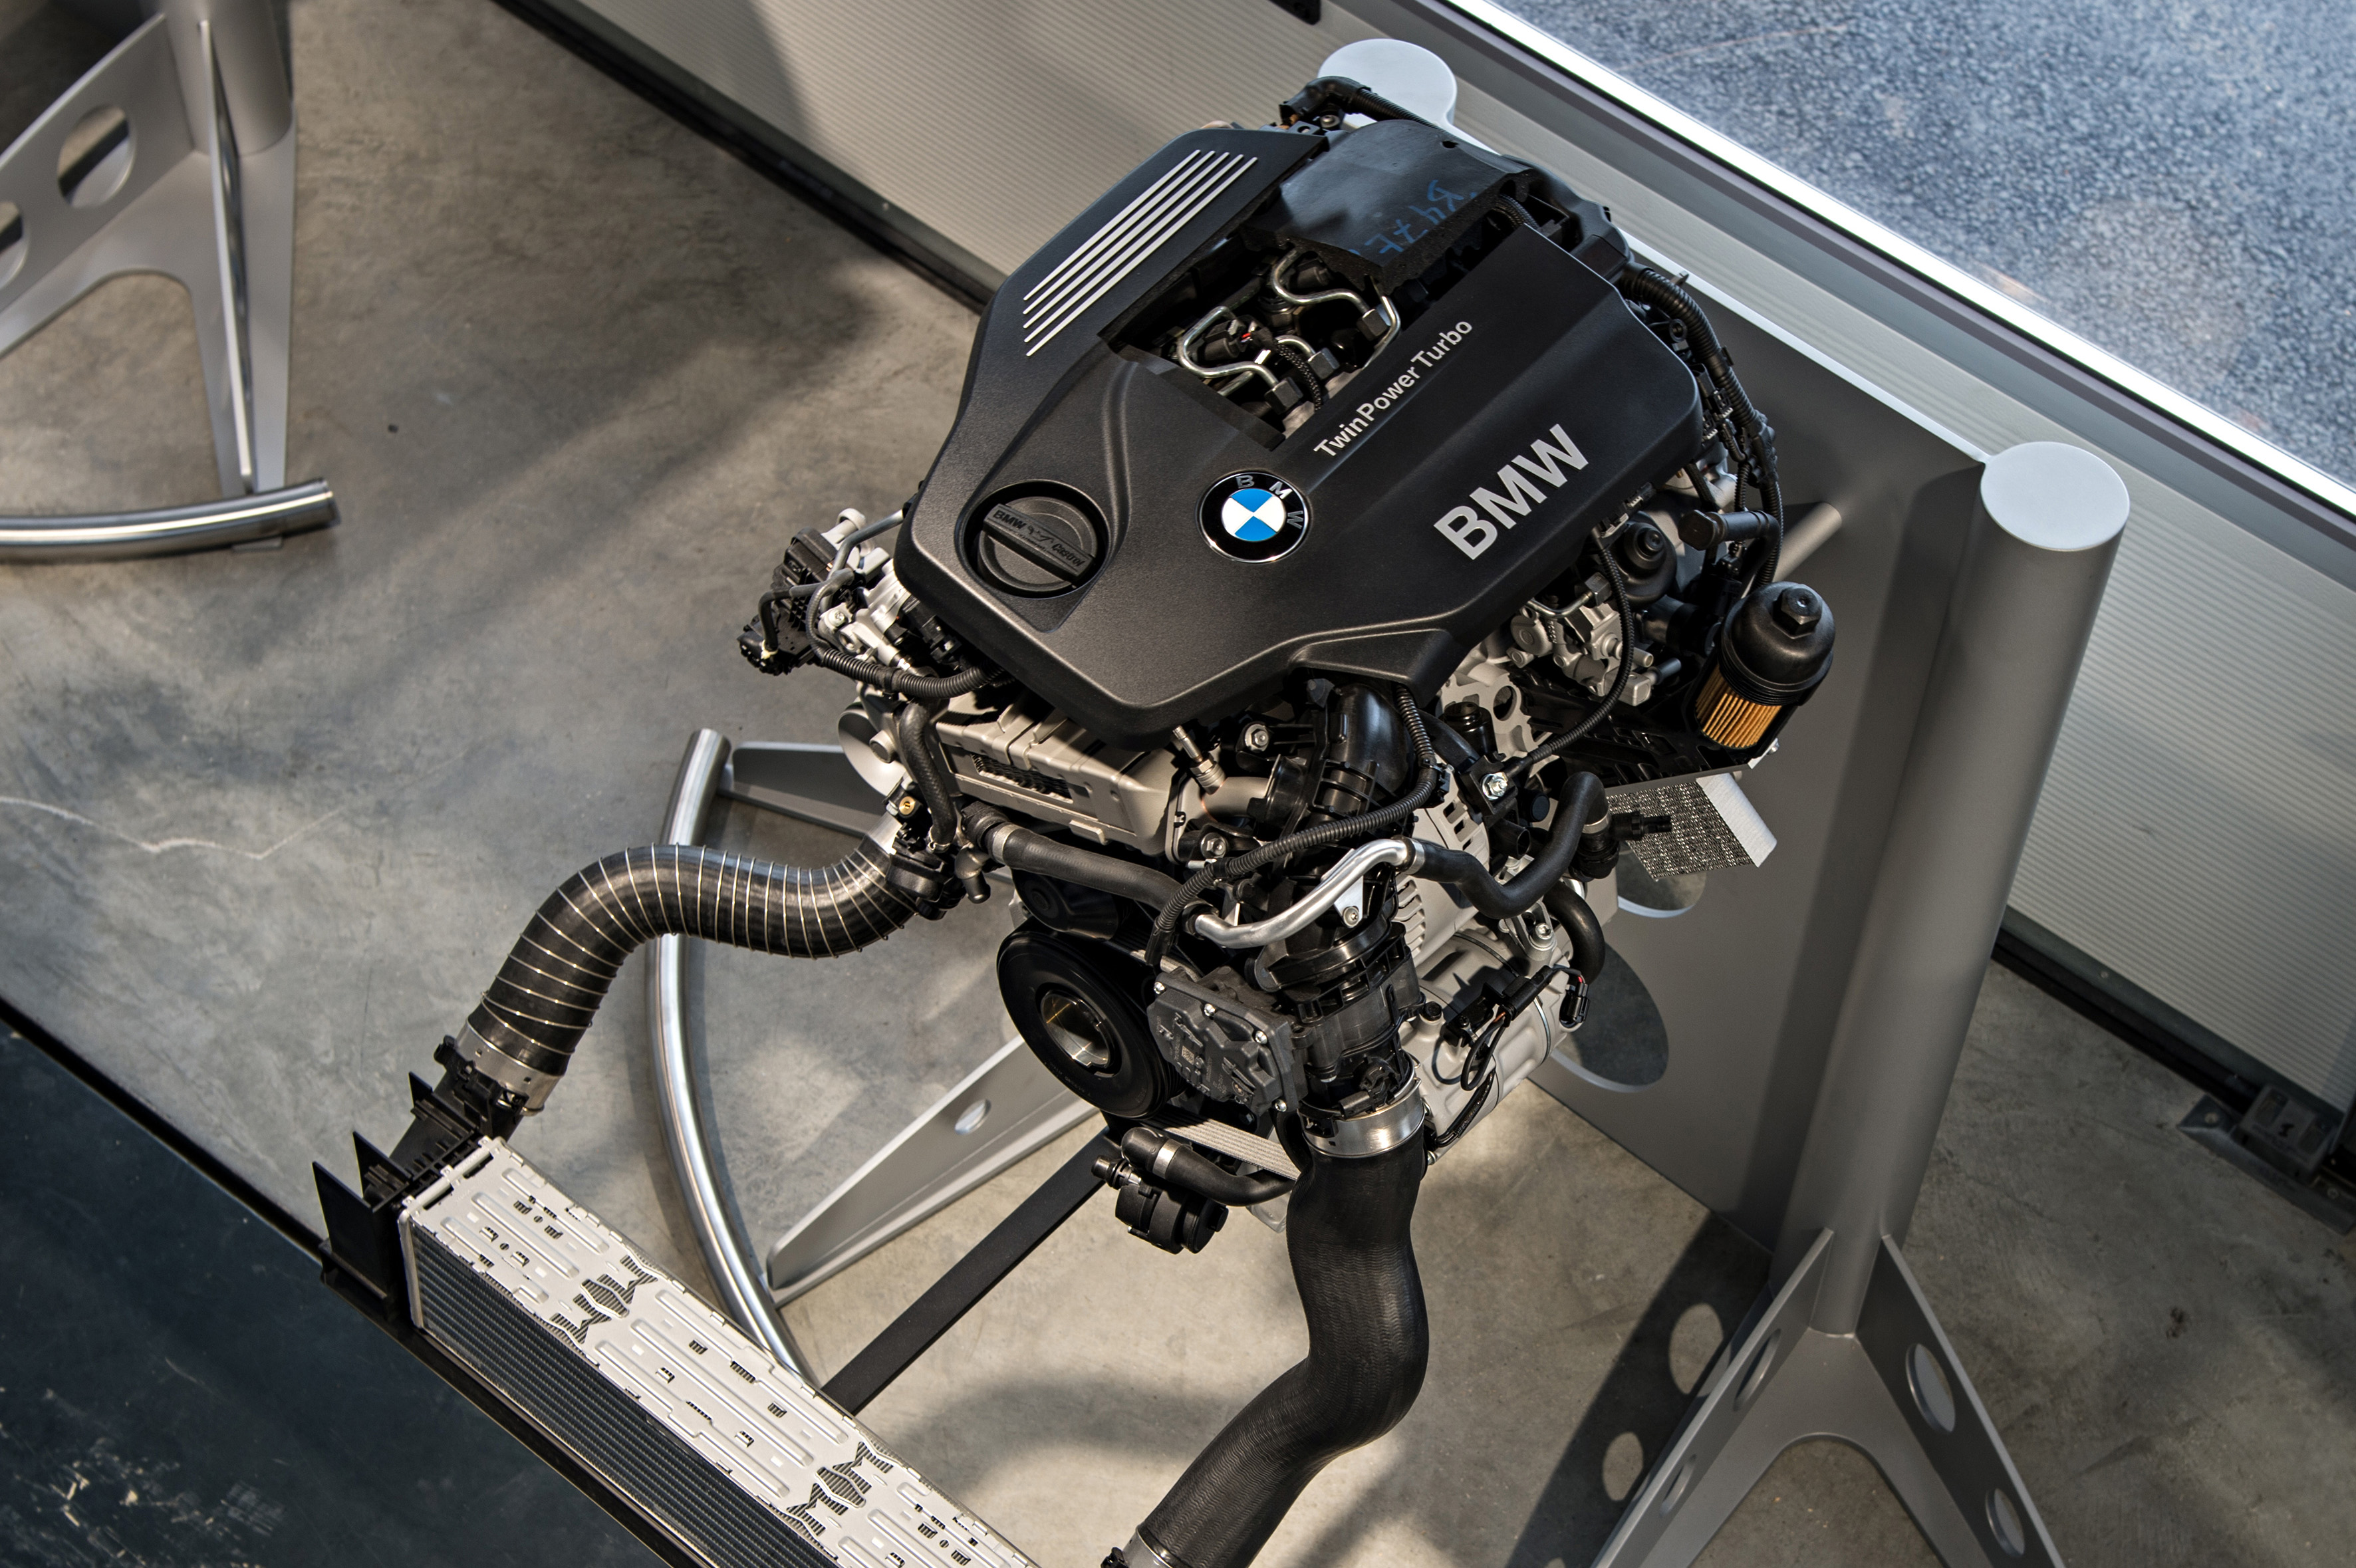 Bmw S New B48 2 0 Litre Four Cylinder Twinpower Turbo Engine To Produce Up To 255 Hp And 400 Nm